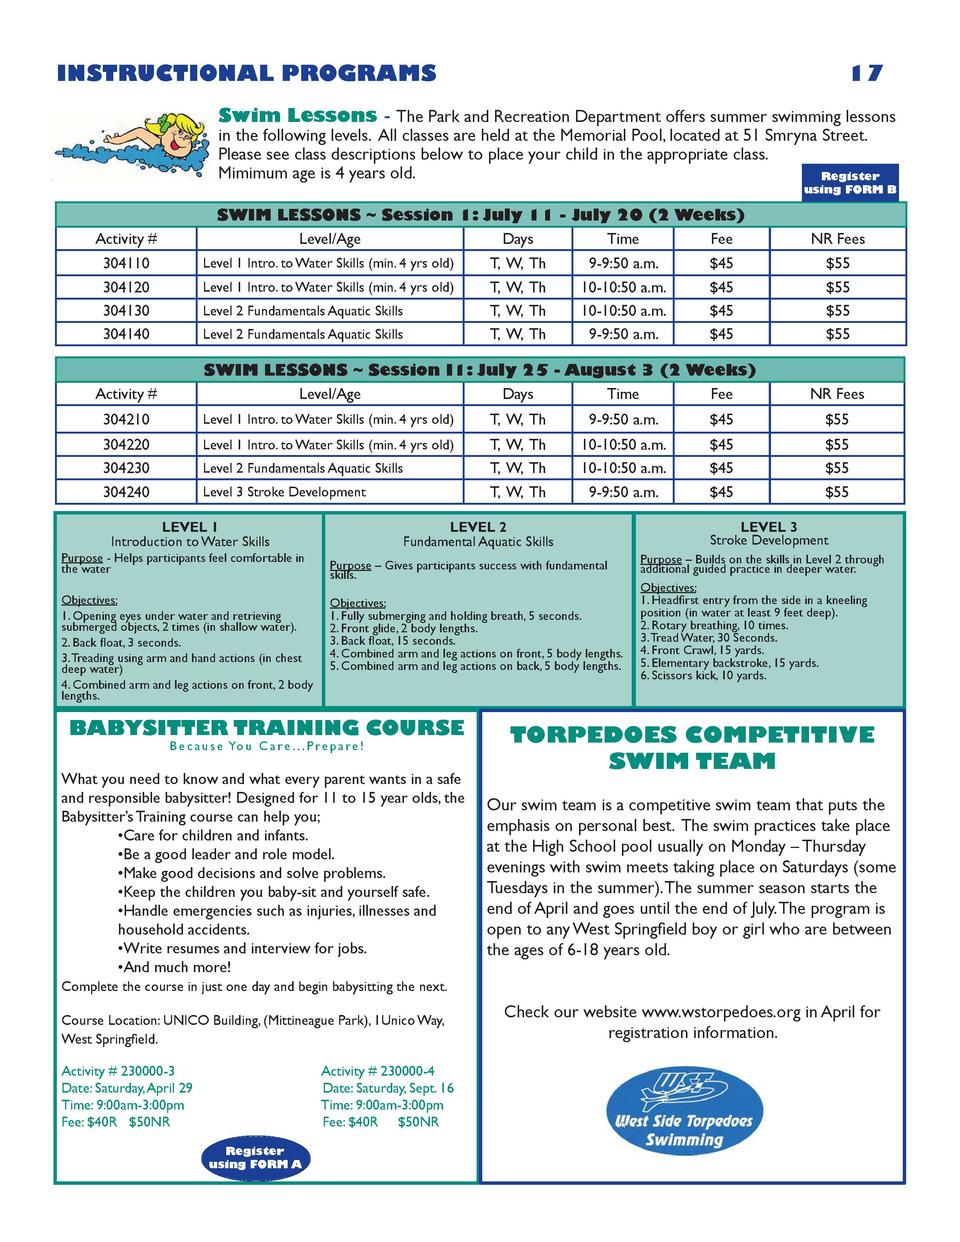 INSTRUCTIONAL PROGRAMS  17  Swim Lessons - The Park and Recreation Department offers summer swimming lessons in the follow...